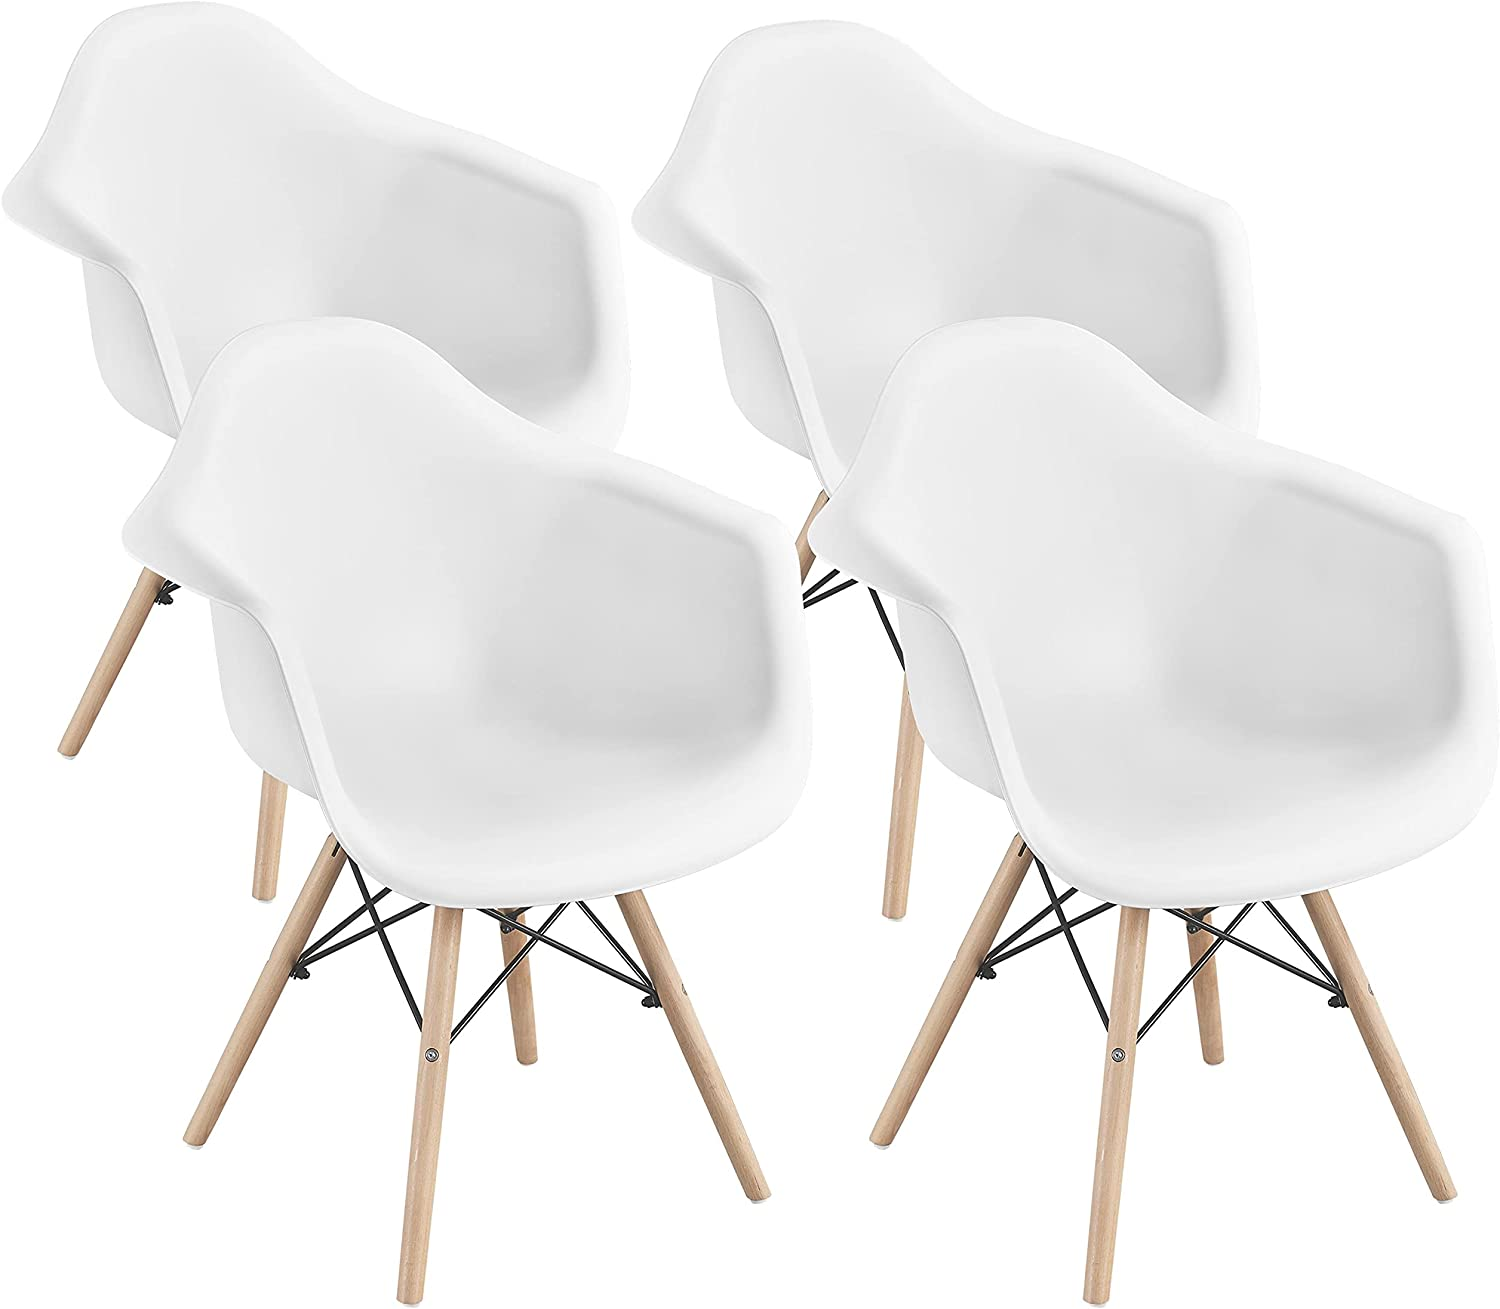 YAHEETECH 4pcs Dining Chair Modern Side Chair DSW Shell Eiffel Accent Chair with Armrests and Beech Wood and Metal Legs for Kitchen Lounge Dining Room Living Room Waiting Room Reception, White